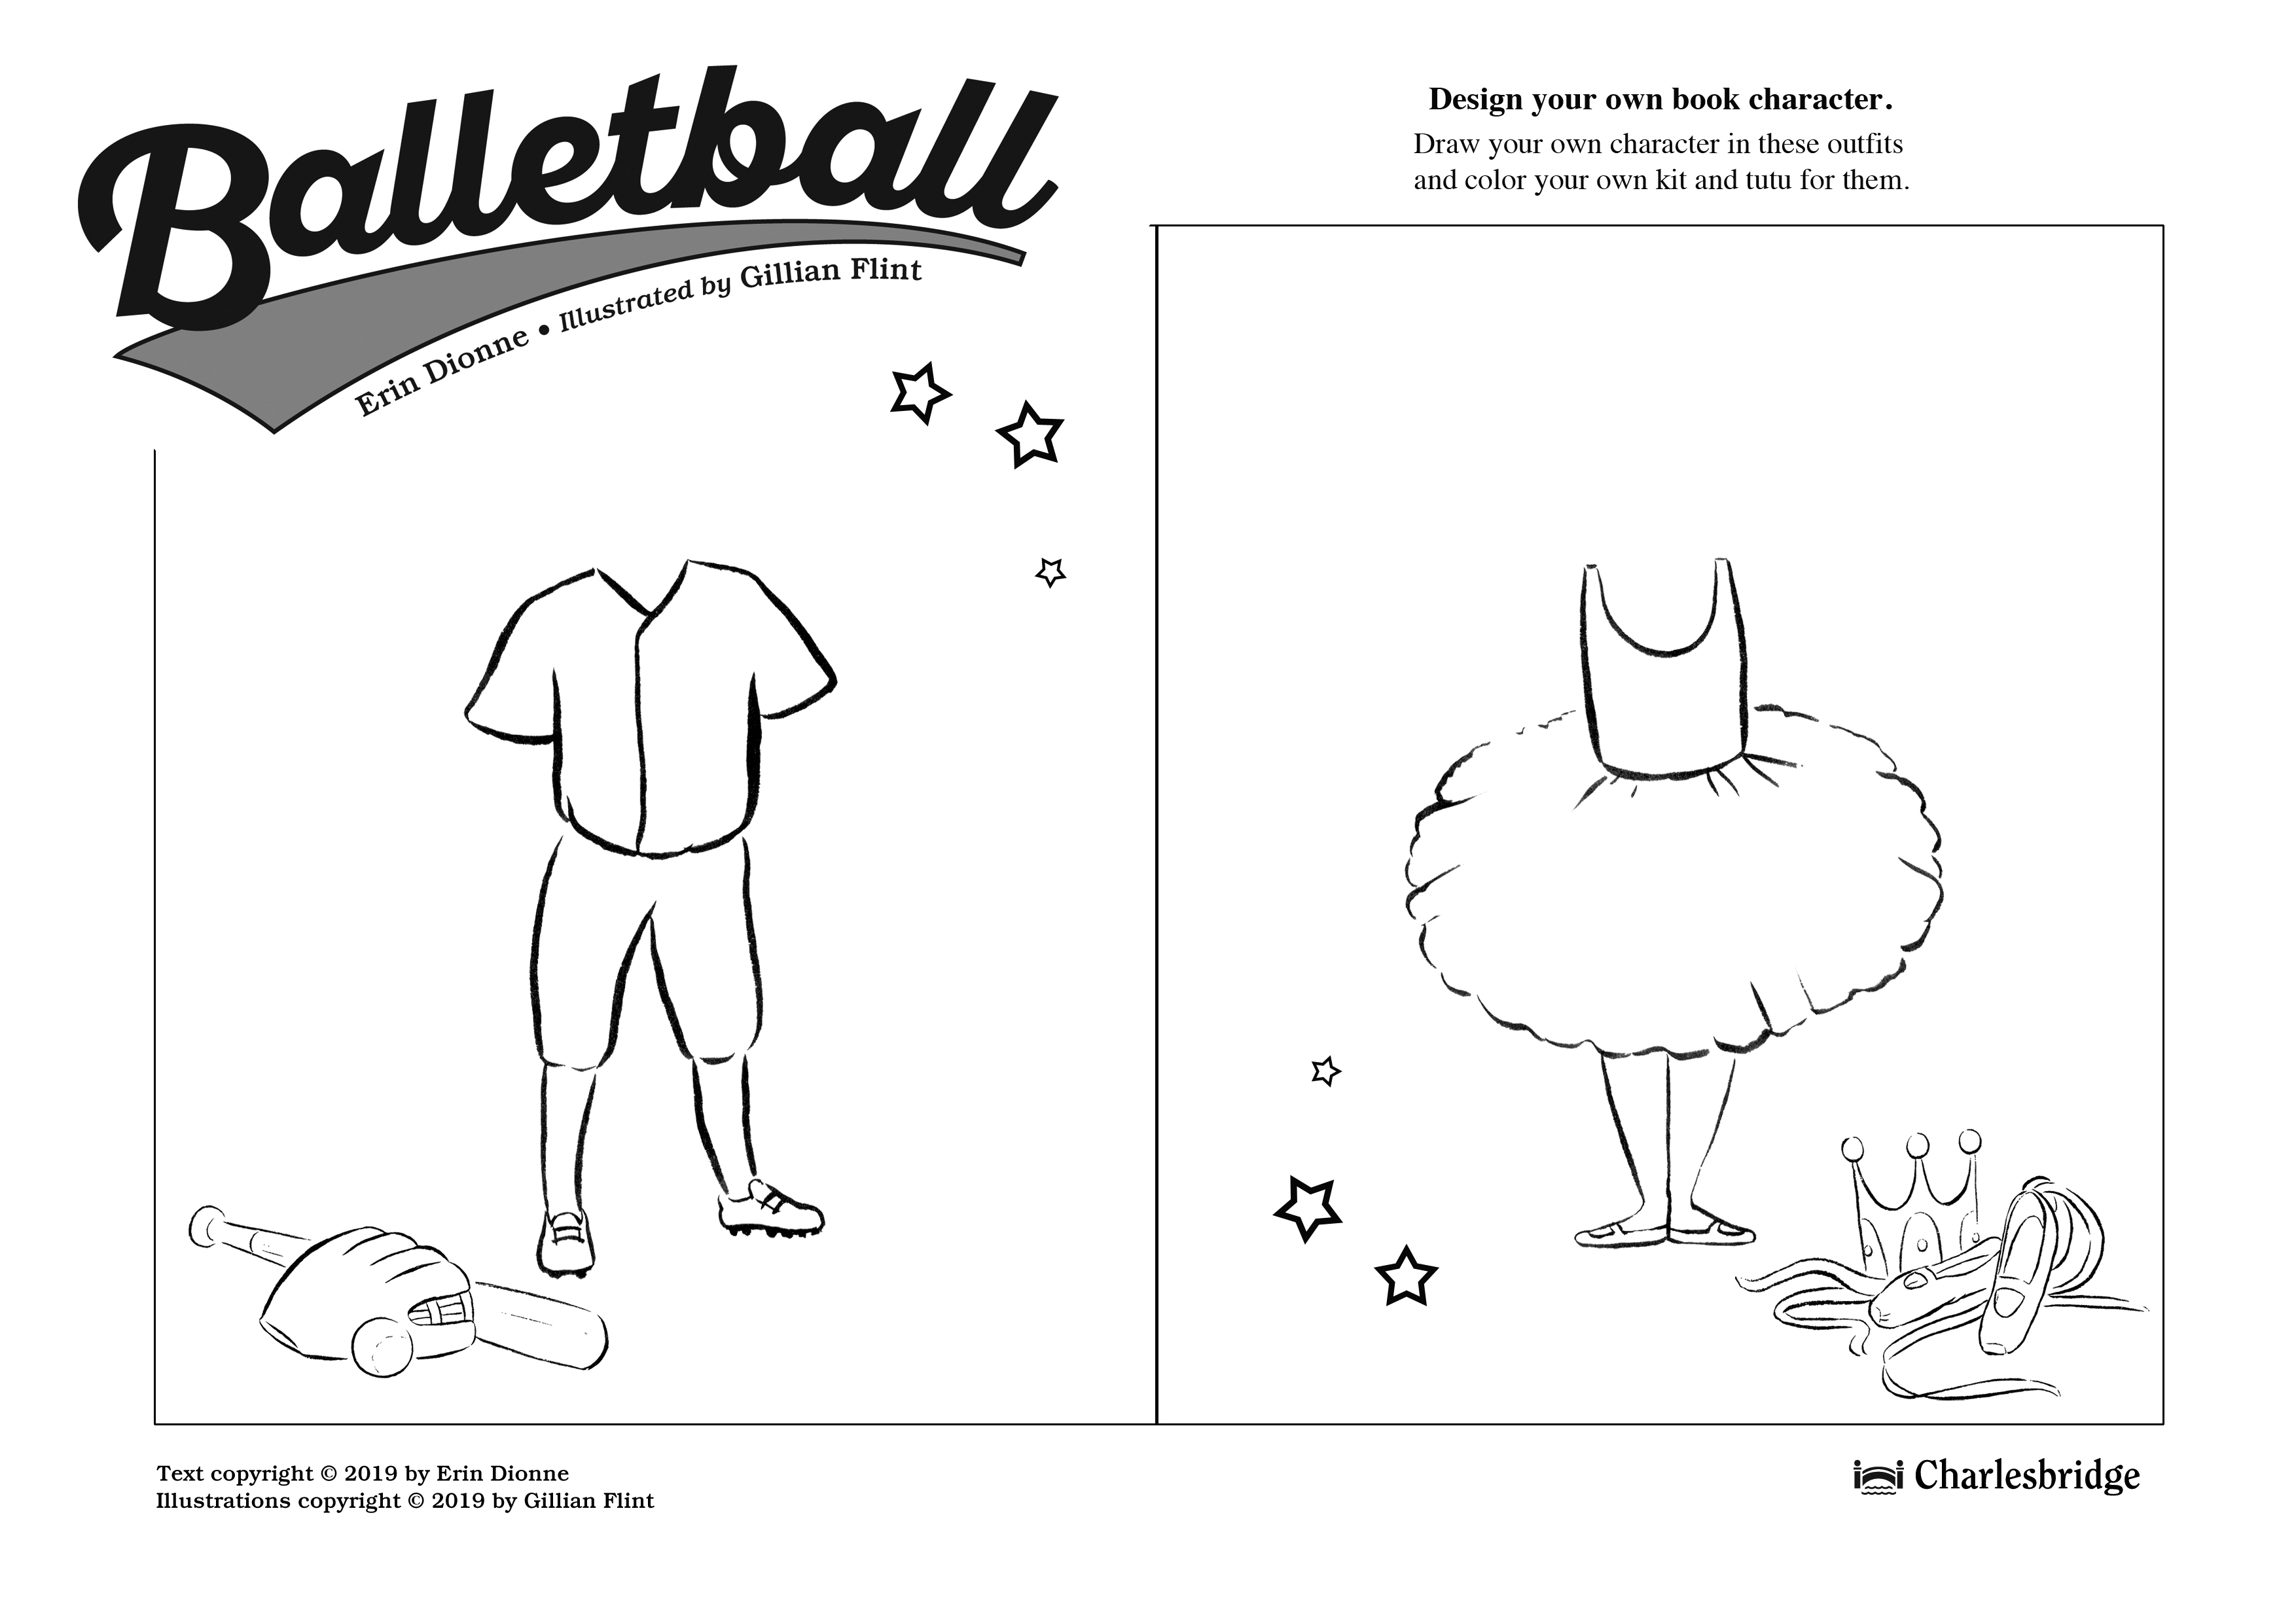 Balletball design your own 1